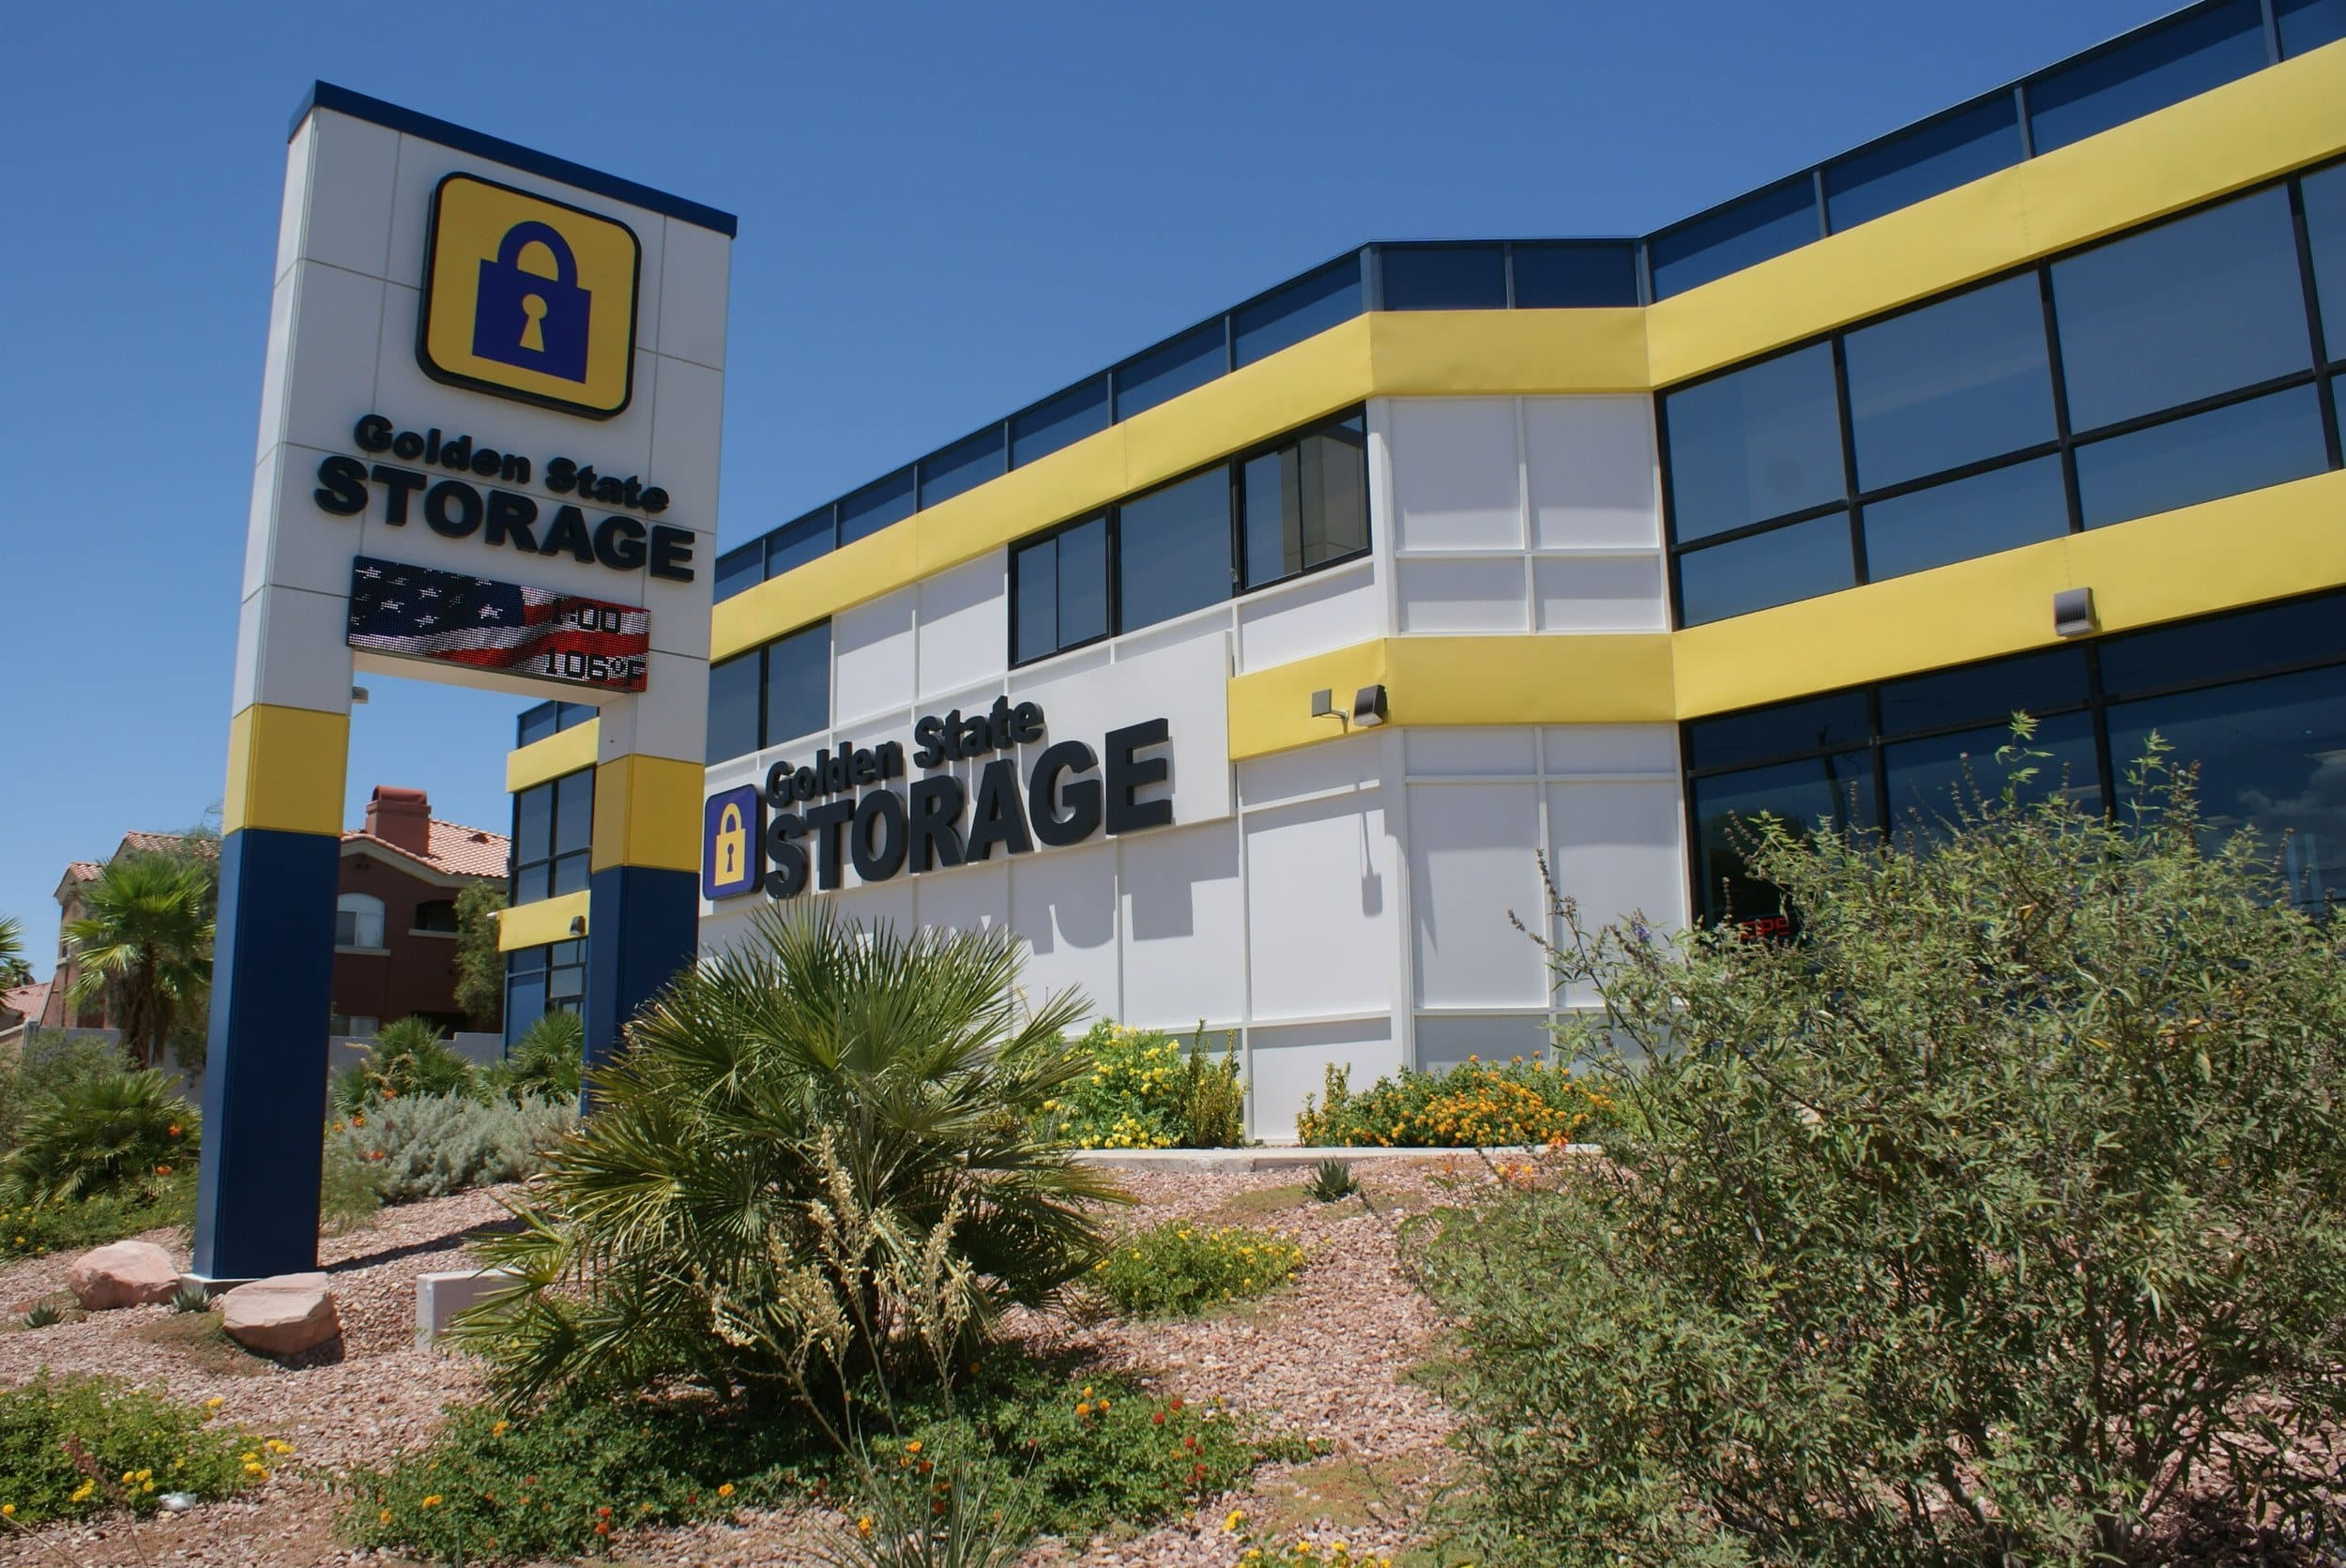 self storage building exterior